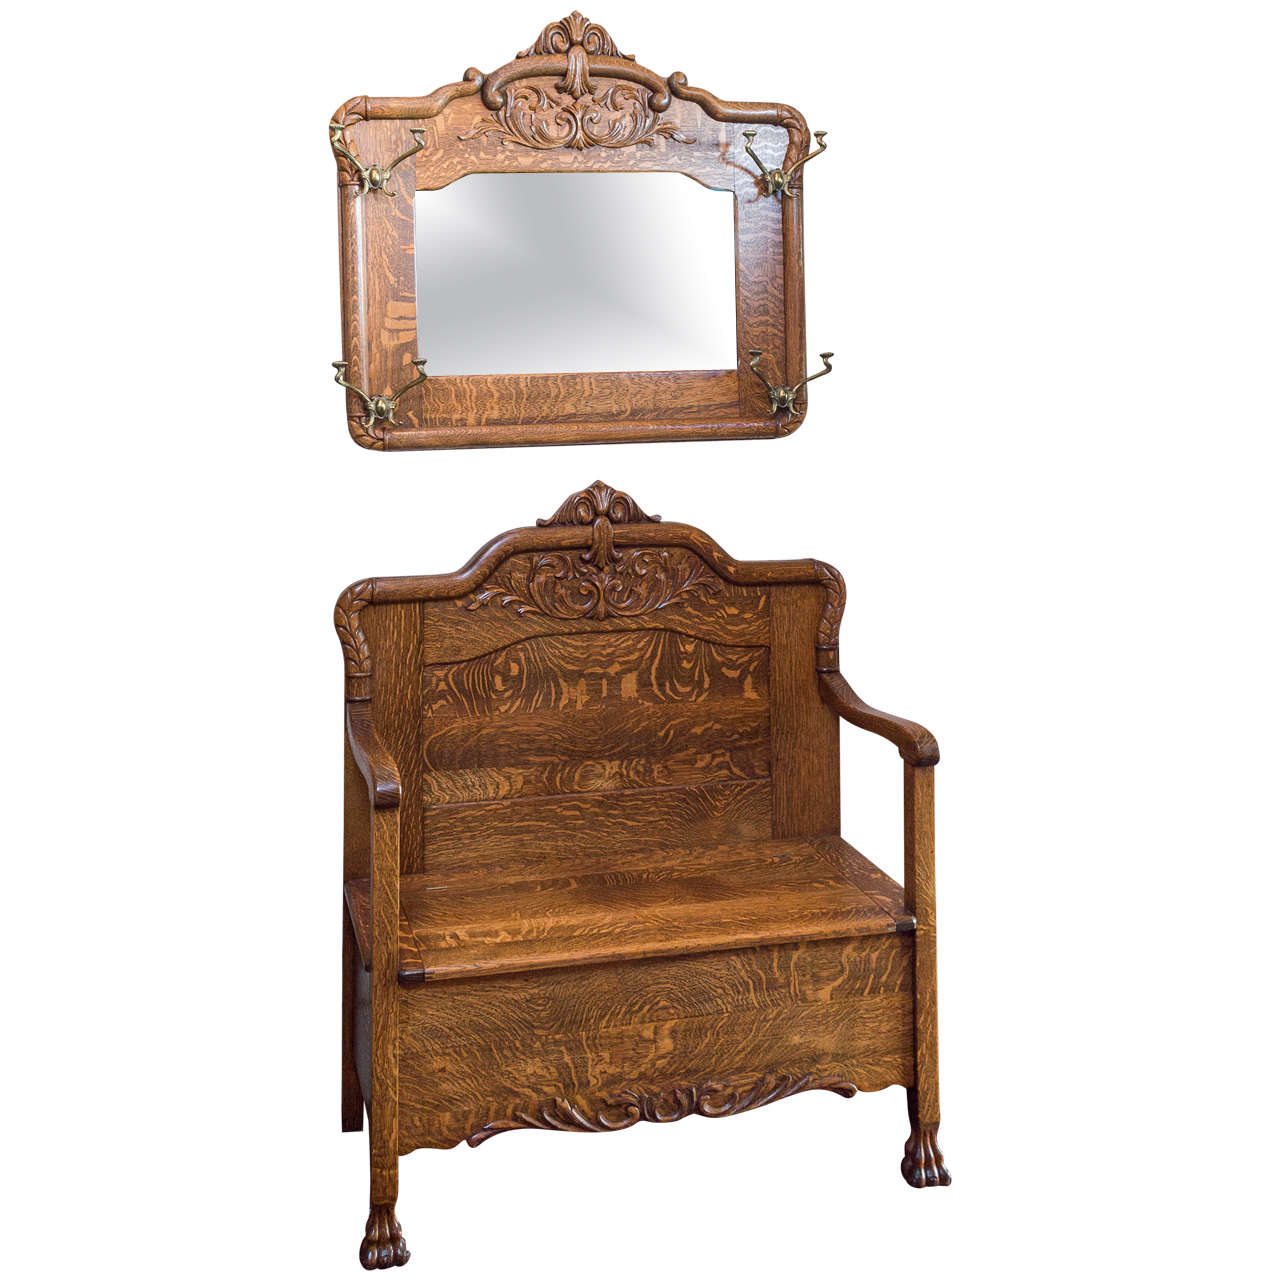 Super Quarter Sawn Oak Hall Bench With Matching Mirror With Hooks At 1stdibs